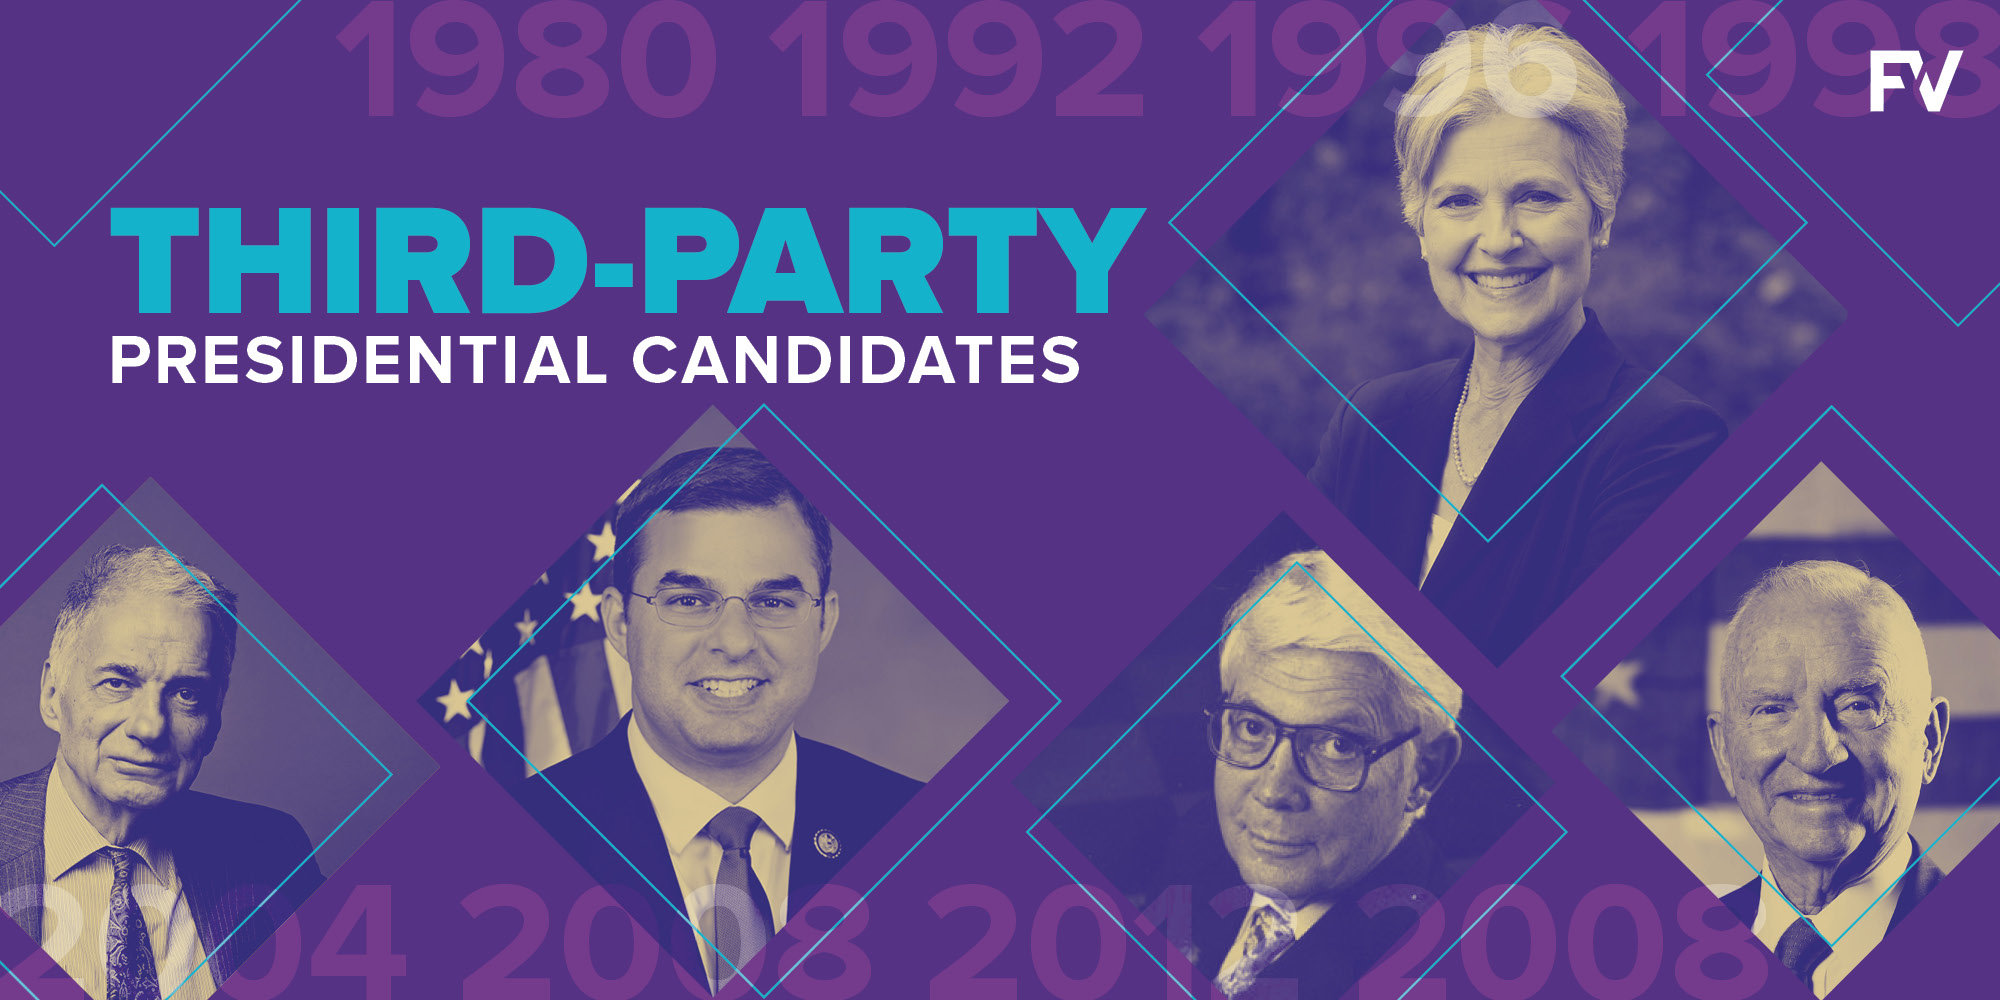 The United States' history of third party candidates: Is the problem with third parties, or with our binary election system?